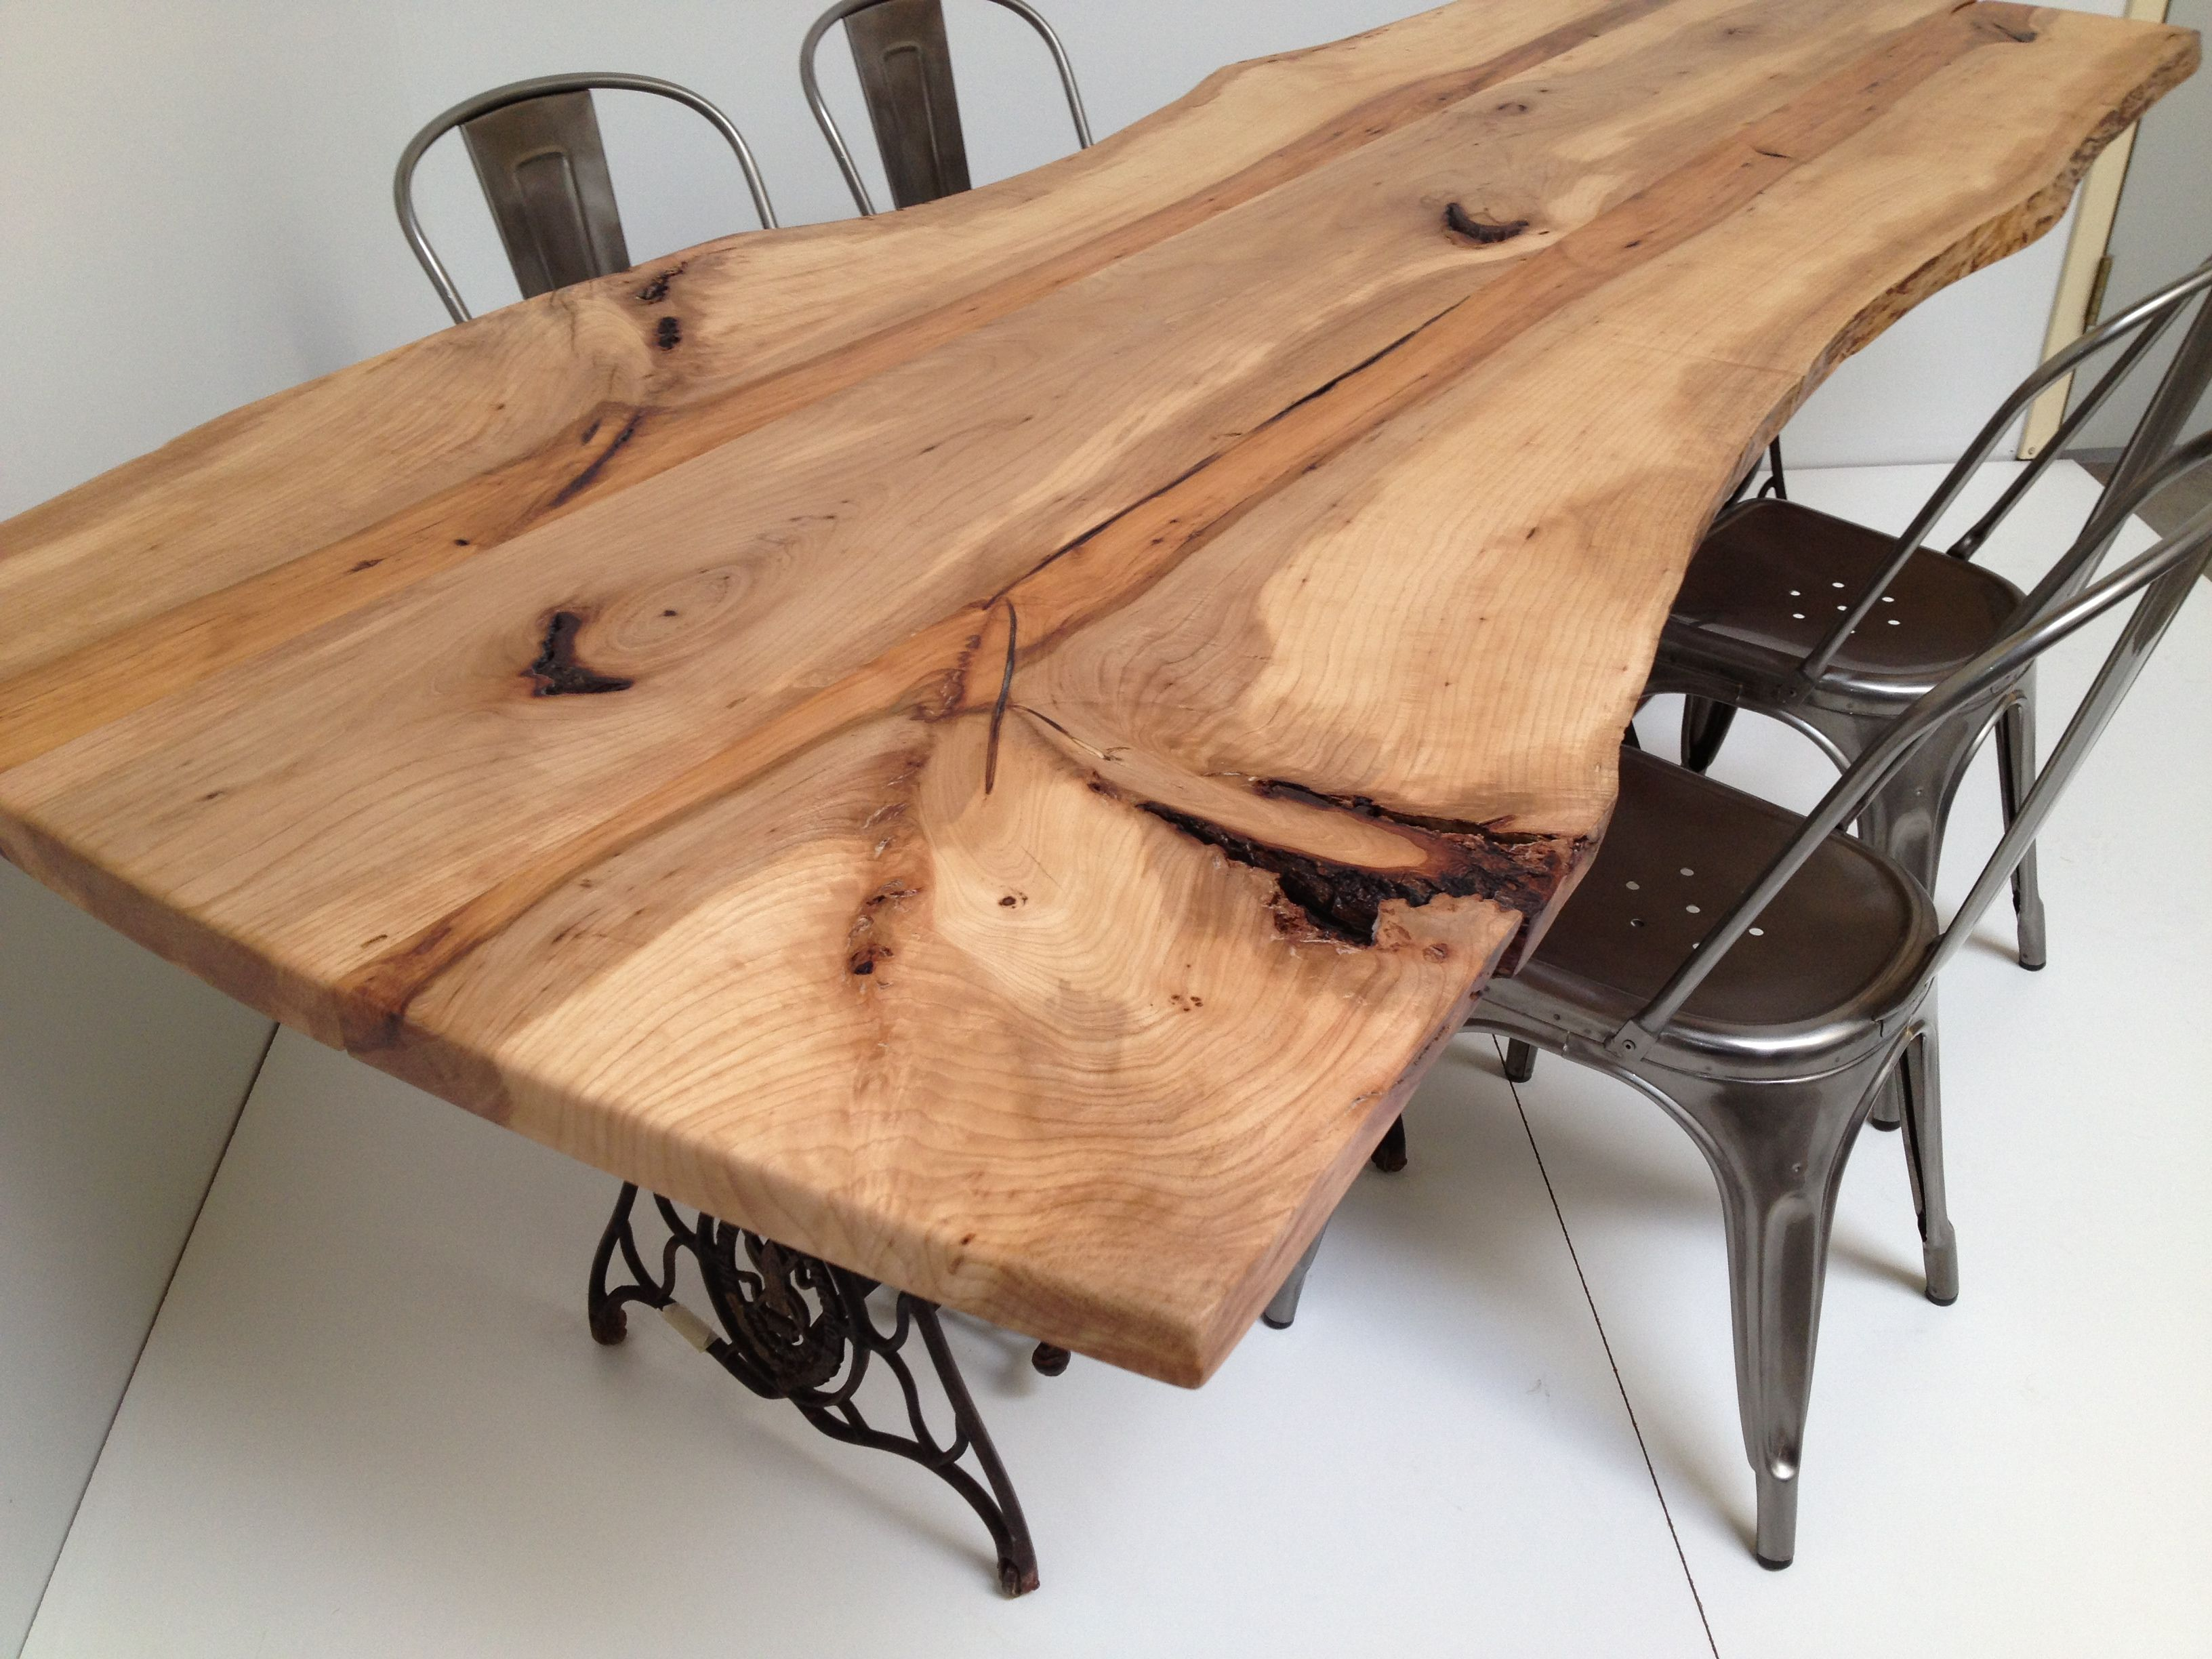 live edge pecan dining table industrial mid century upcycled base innengestaltung pinterest. Black Bedroom Furniture Sets. Home Design Ideas